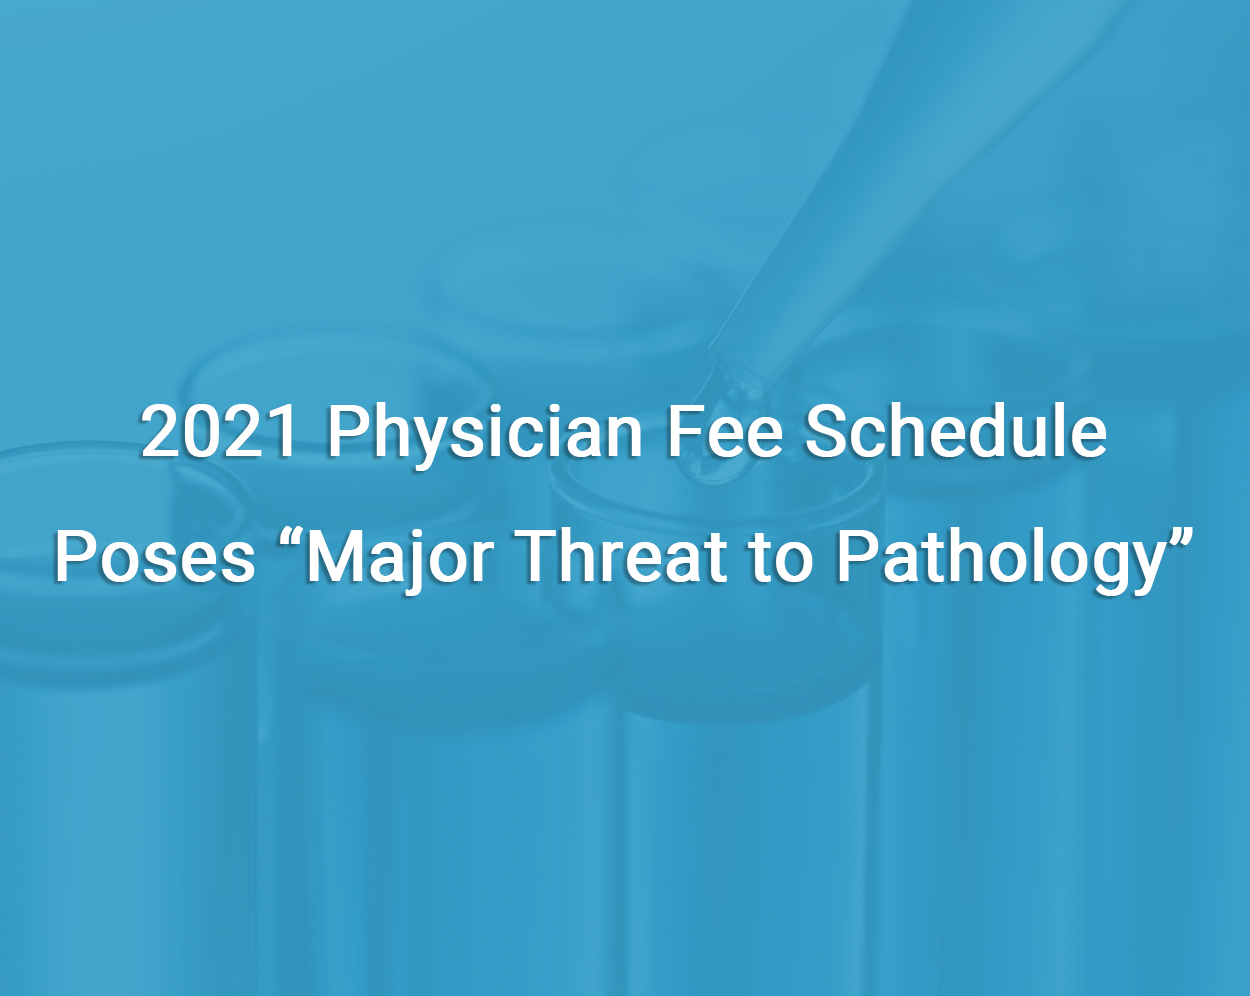 2021 Proposed Fee Schedule for Pathologists